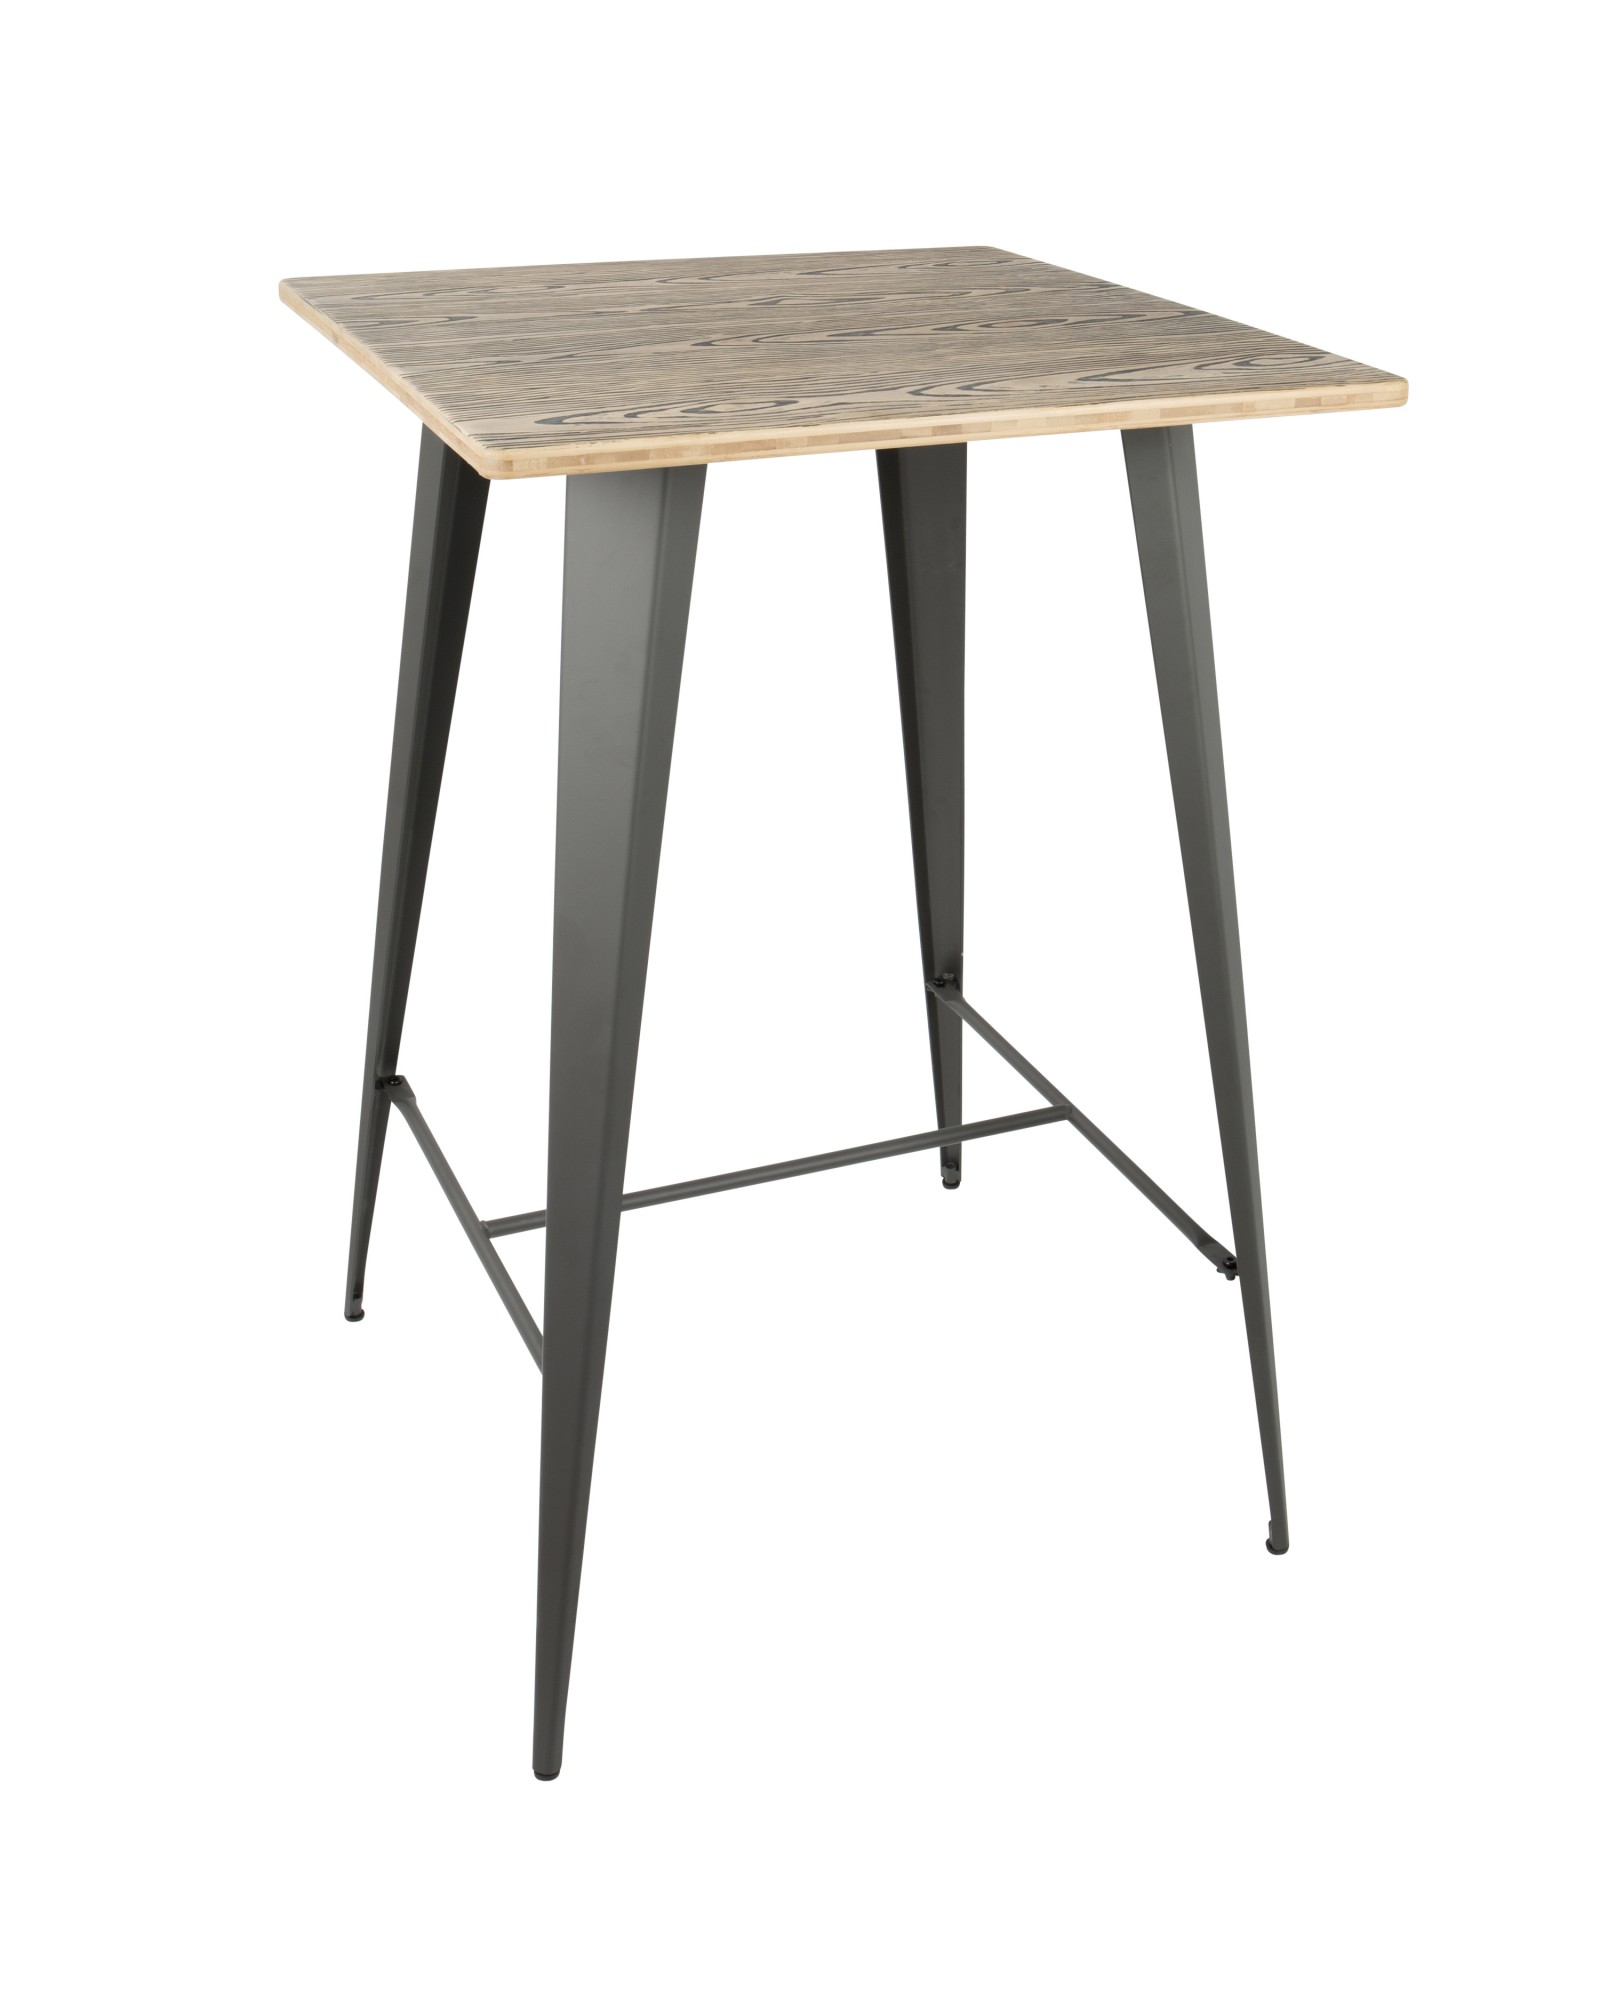 Oregon Industrial Table in Grey and Brown LumiSource